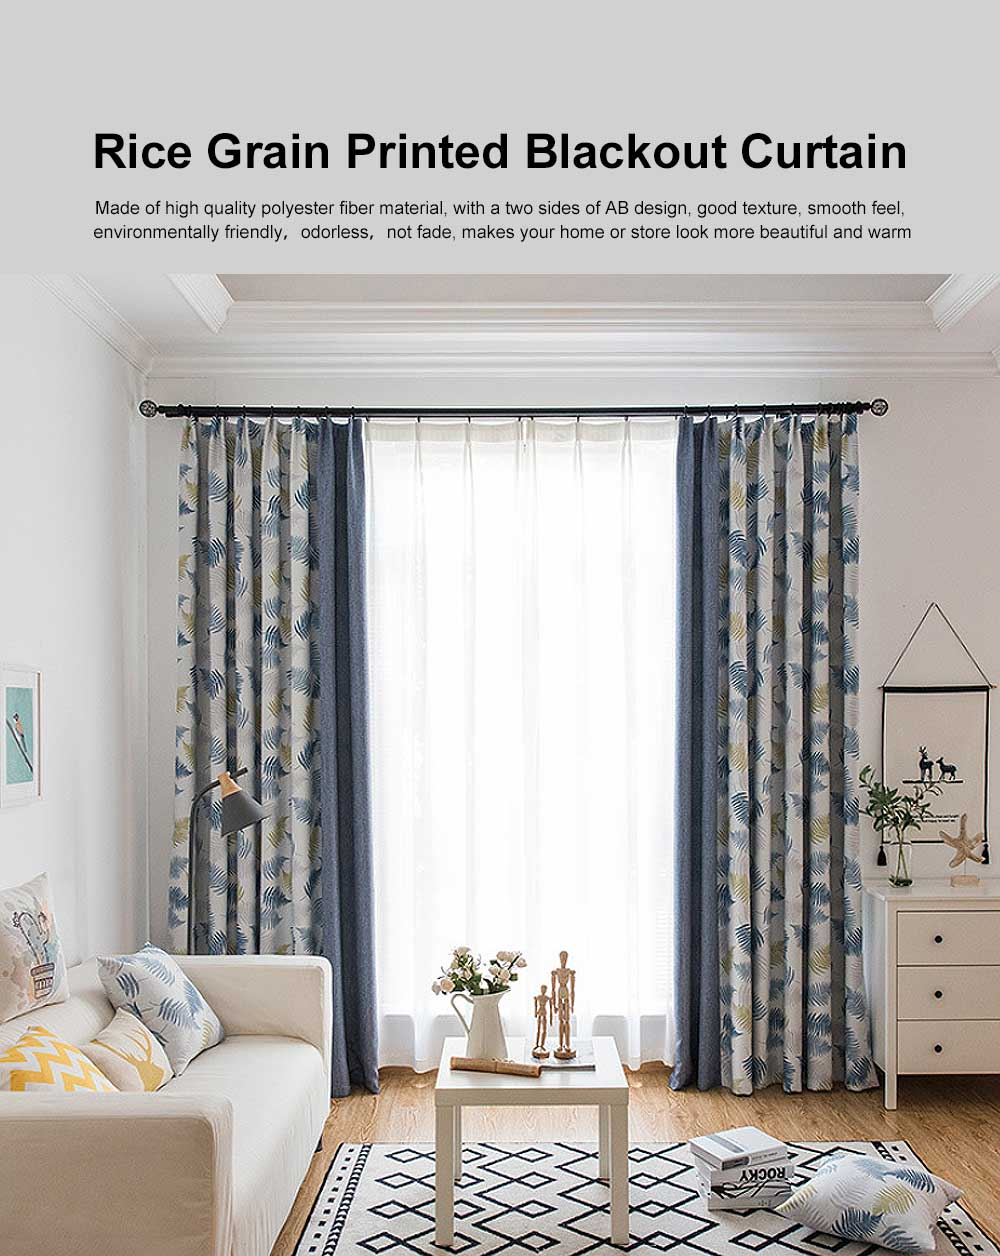 Rice Grain Printed Blackout Curtain, Nordic Wind Stitching Curtains for Living Room, Bedroom, High Quality Cloth Curtains 0